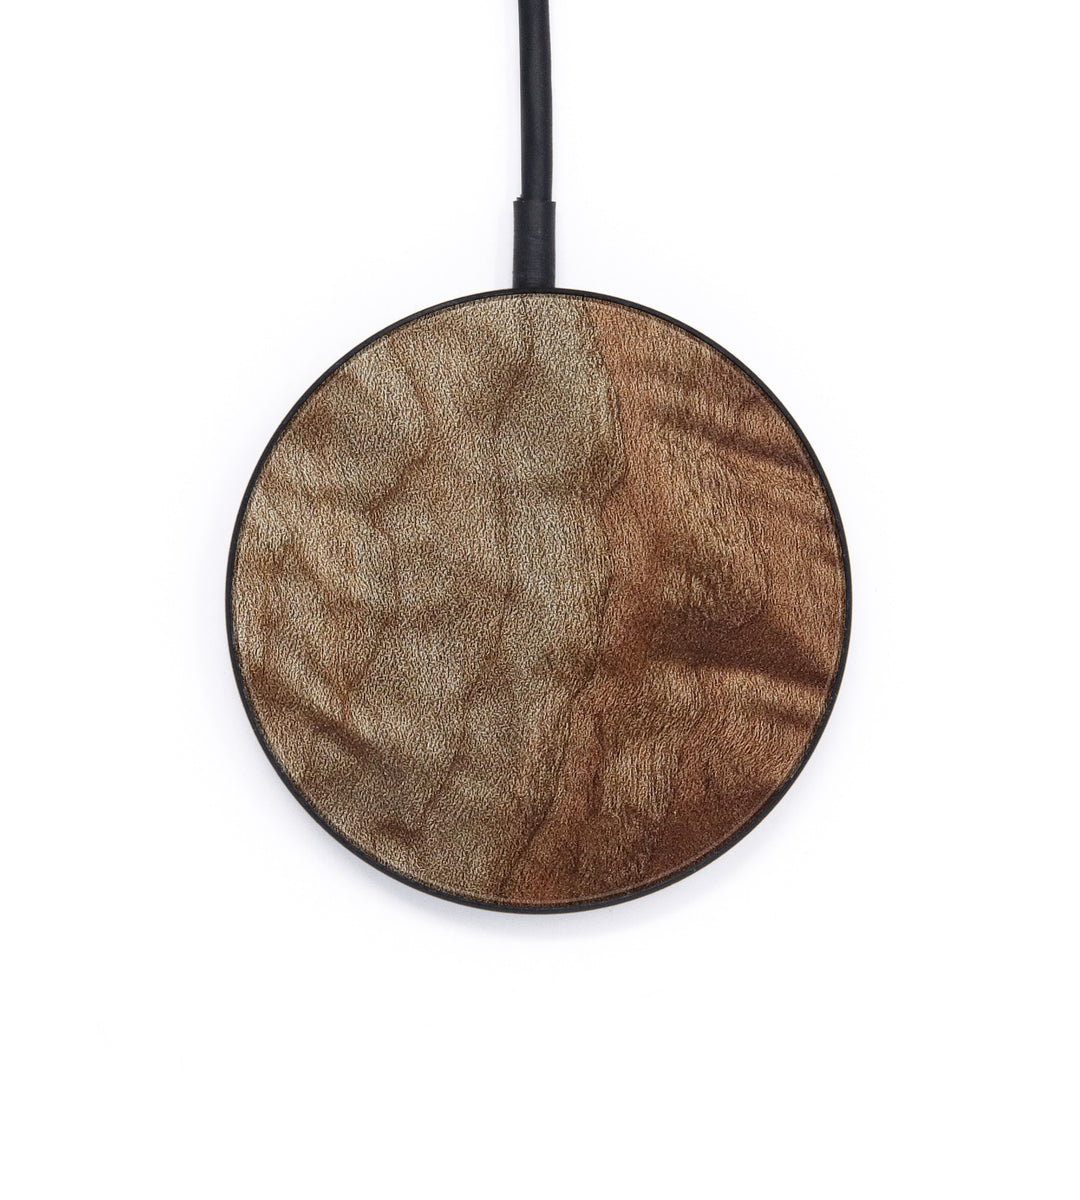 Circle Wood+Resin Wireless Charger - Ting (Maple Burl, 386388)